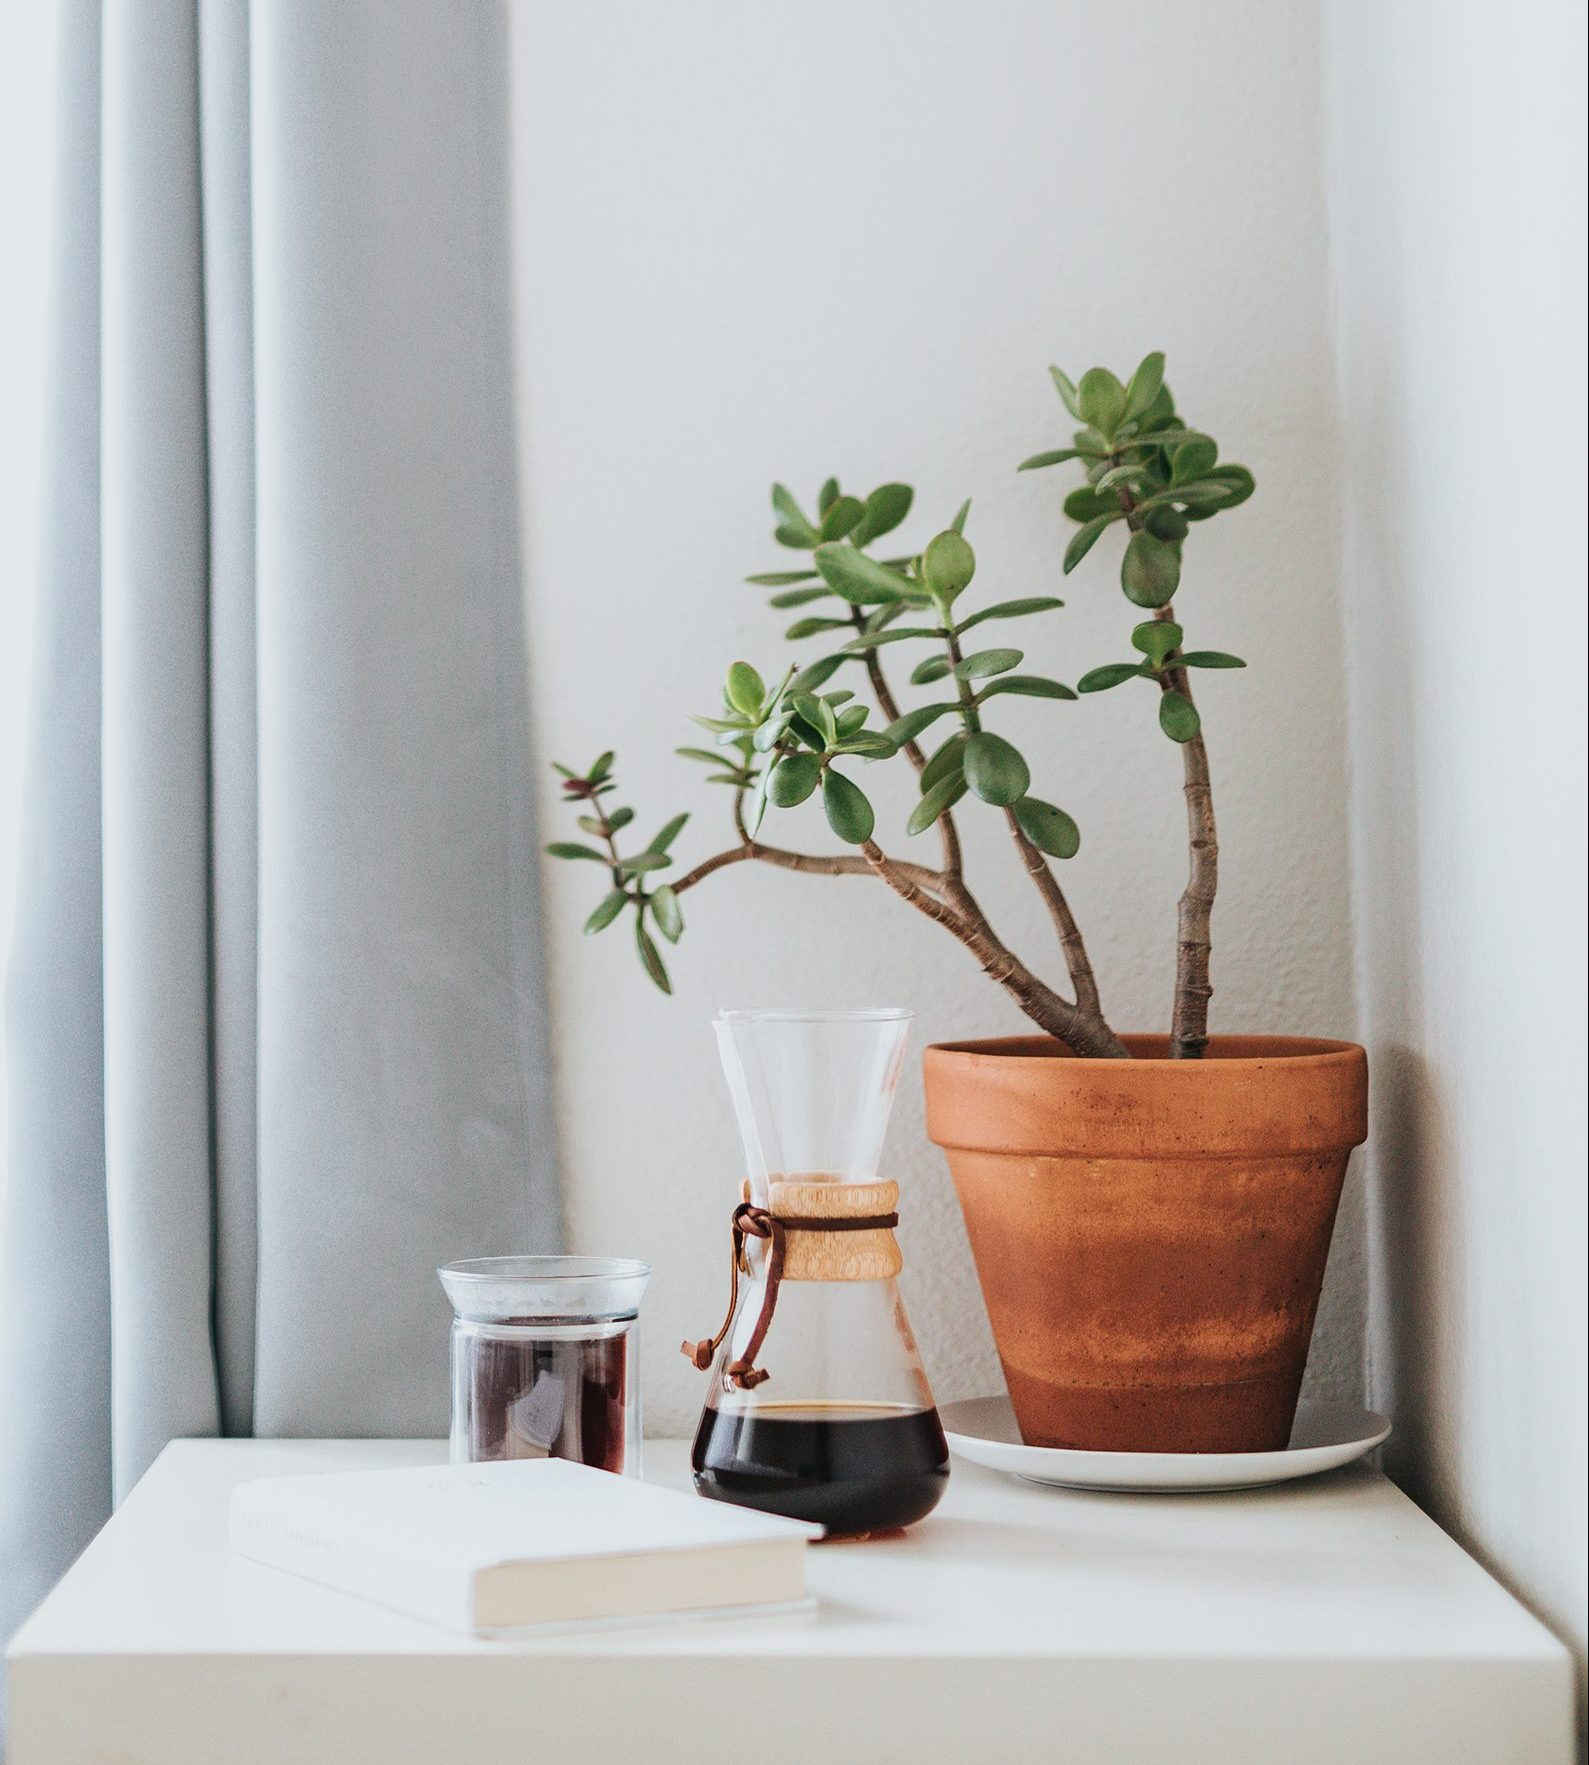 Coffee and plant